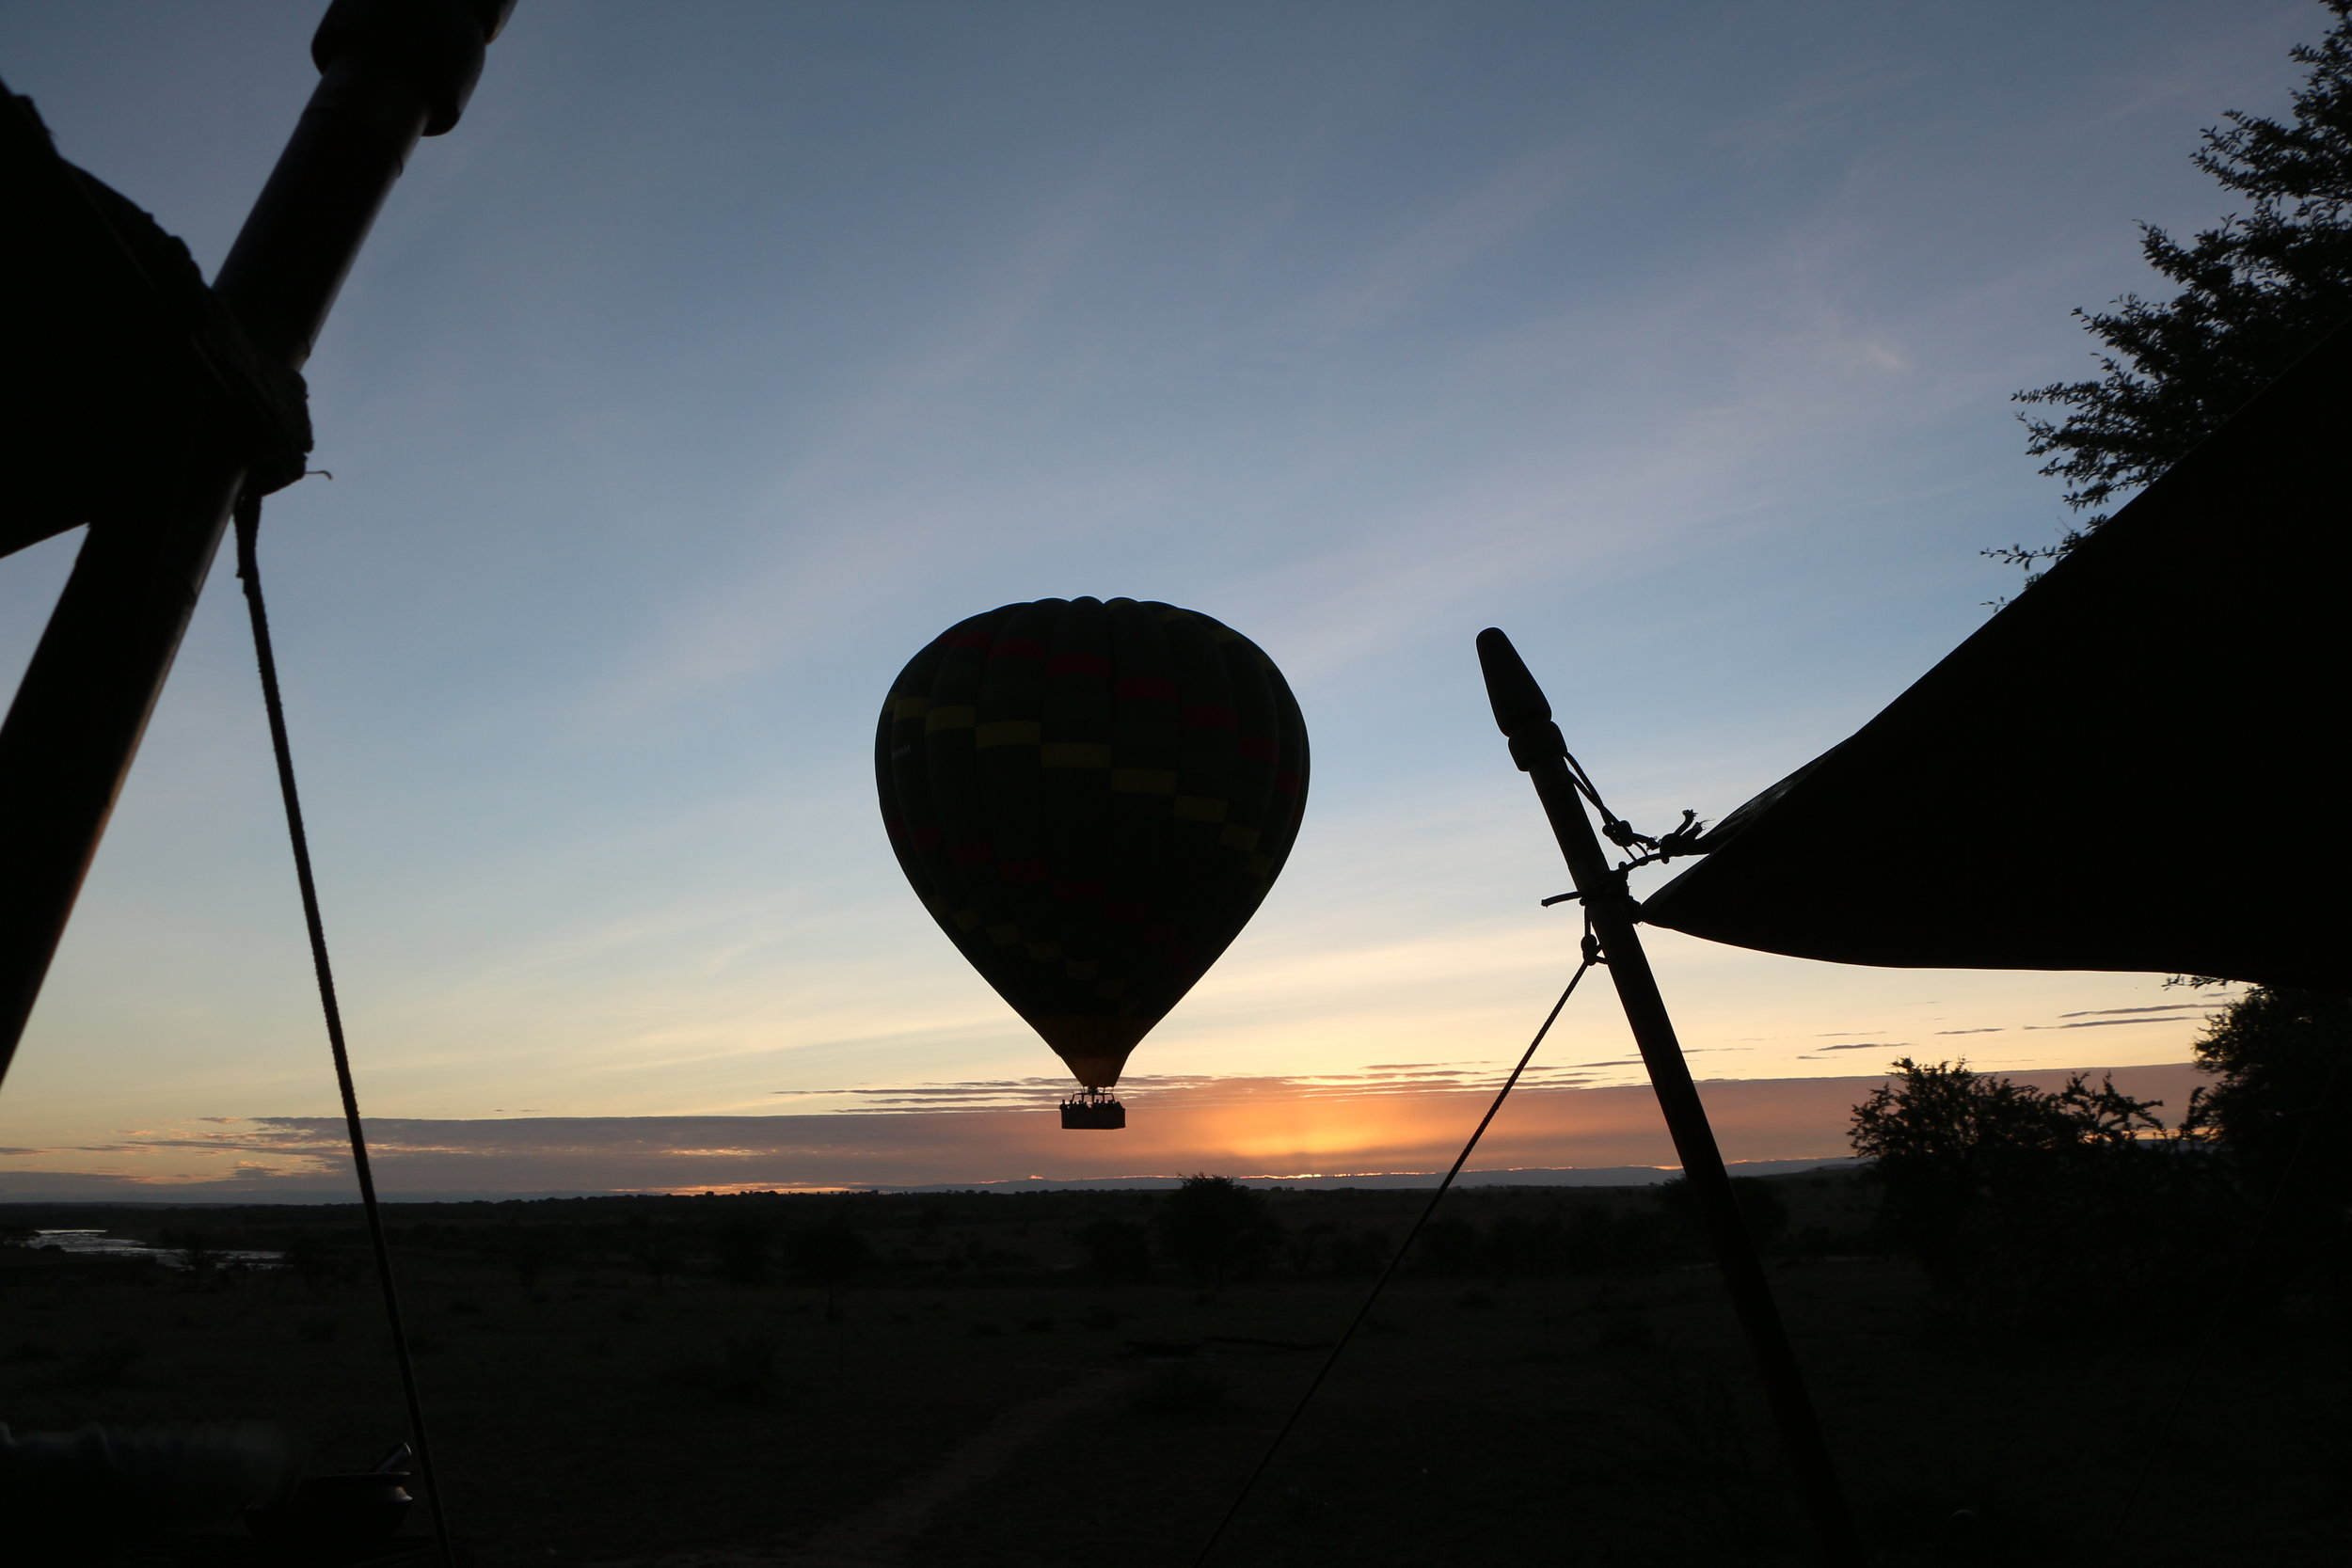 Hot Air Balloon - Olakira Migration Camp